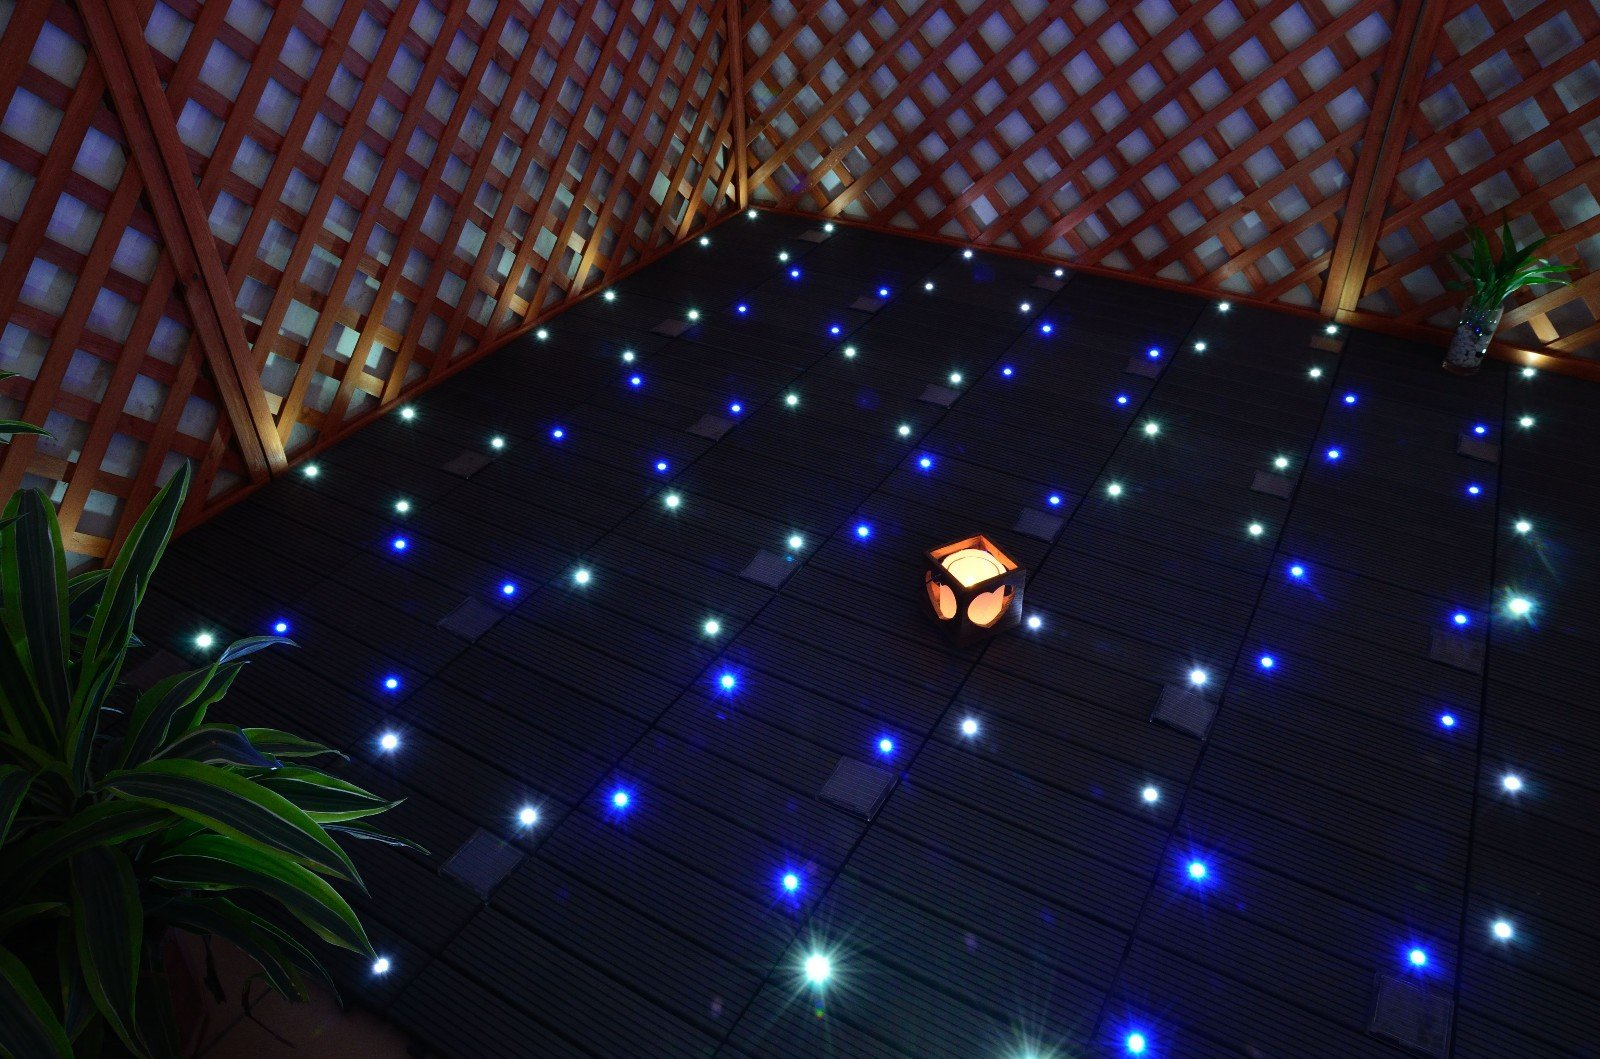 wpc balcony deck tiles ground JIABANG-7